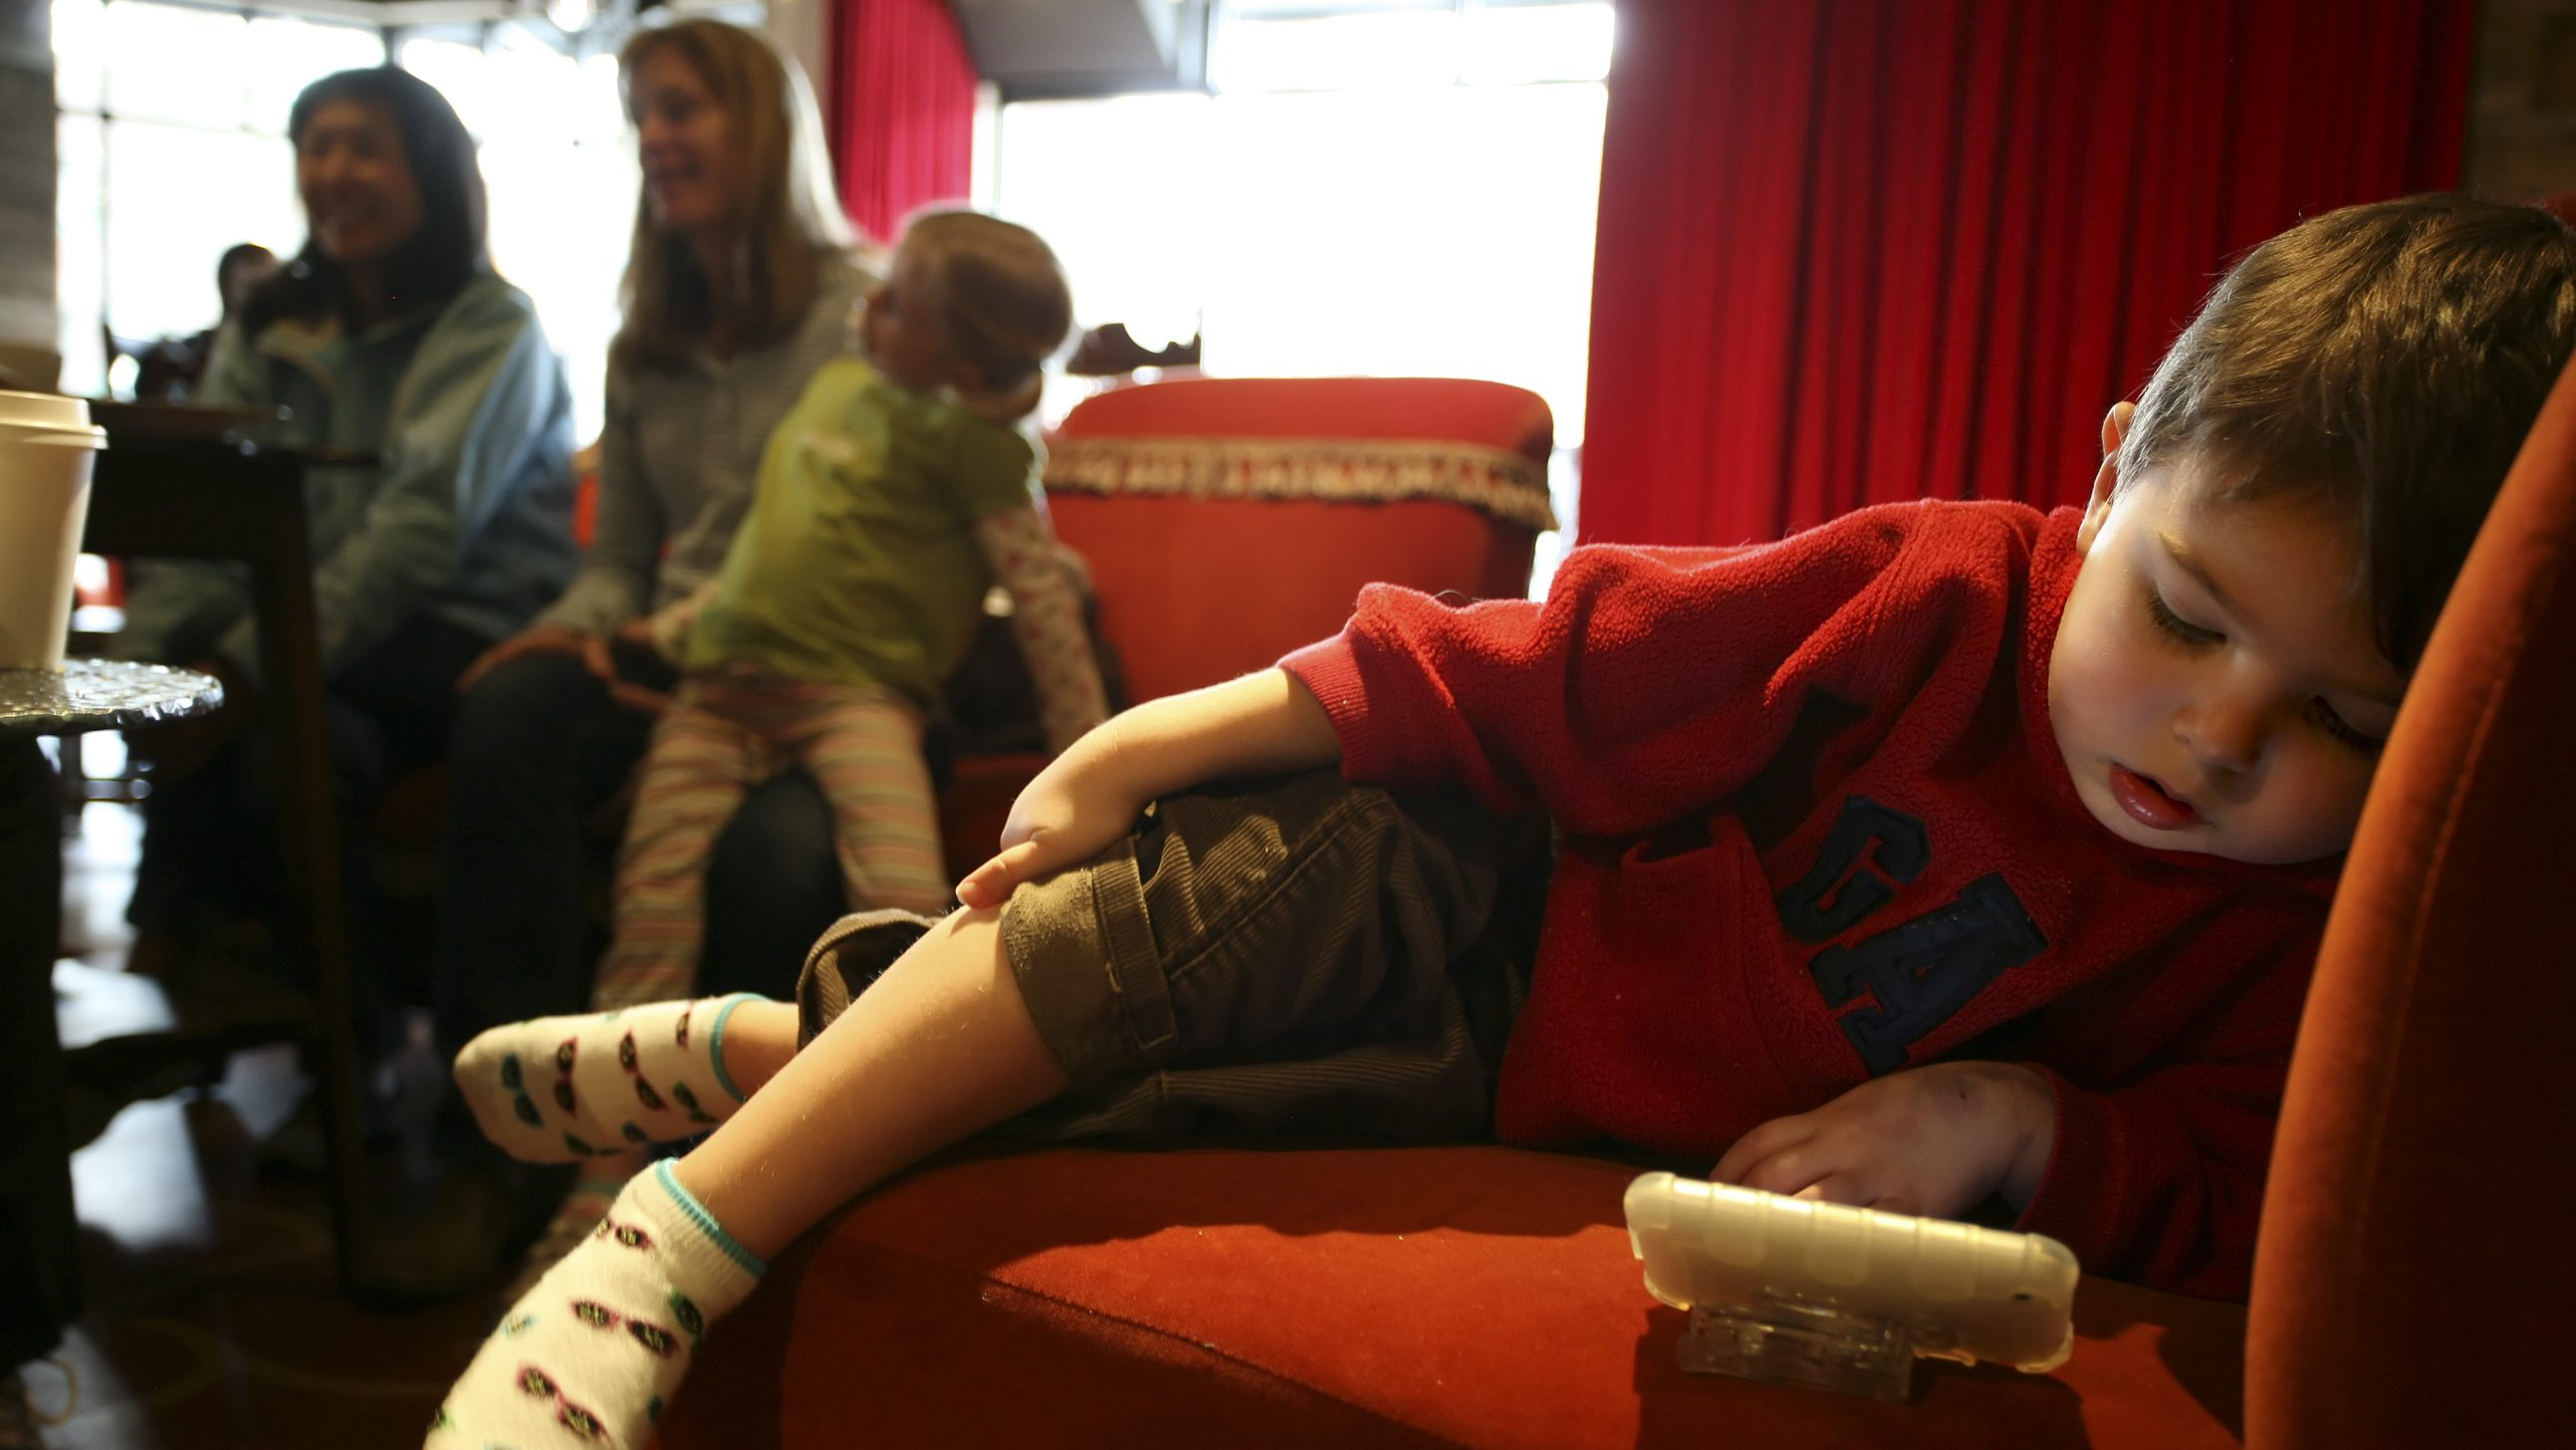 Matthew West, 3, watches a video on his Mom's iPhone while she talks with friends at Starbucks' Roy Street Coffee and Tea in Seattle, Washington, March 25, 2010.